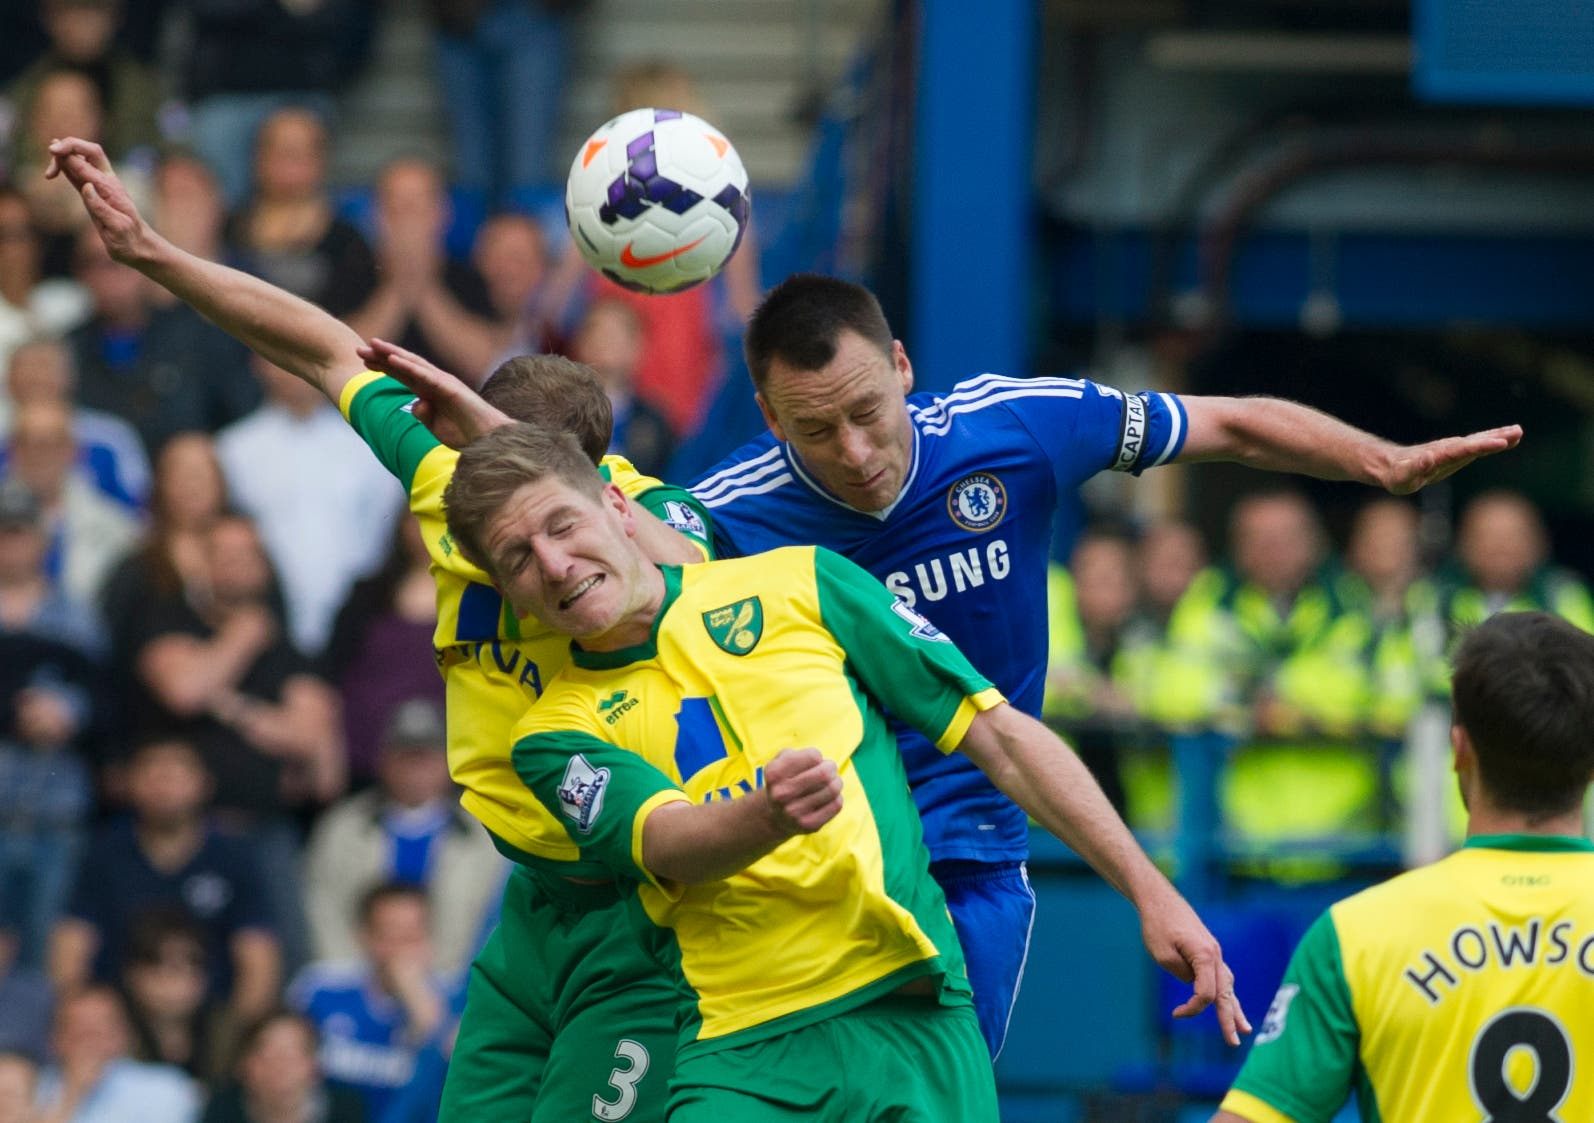 Chelsea's John Terry, right, fights for the ball with Norwich City's Michael Turner, front, and Steven Whittaker, during their English Premier League soccer match, at the Stamford Bridge Stadium in London, Sunday May 4, 2014. (AP Photo/Bogdan Maran)